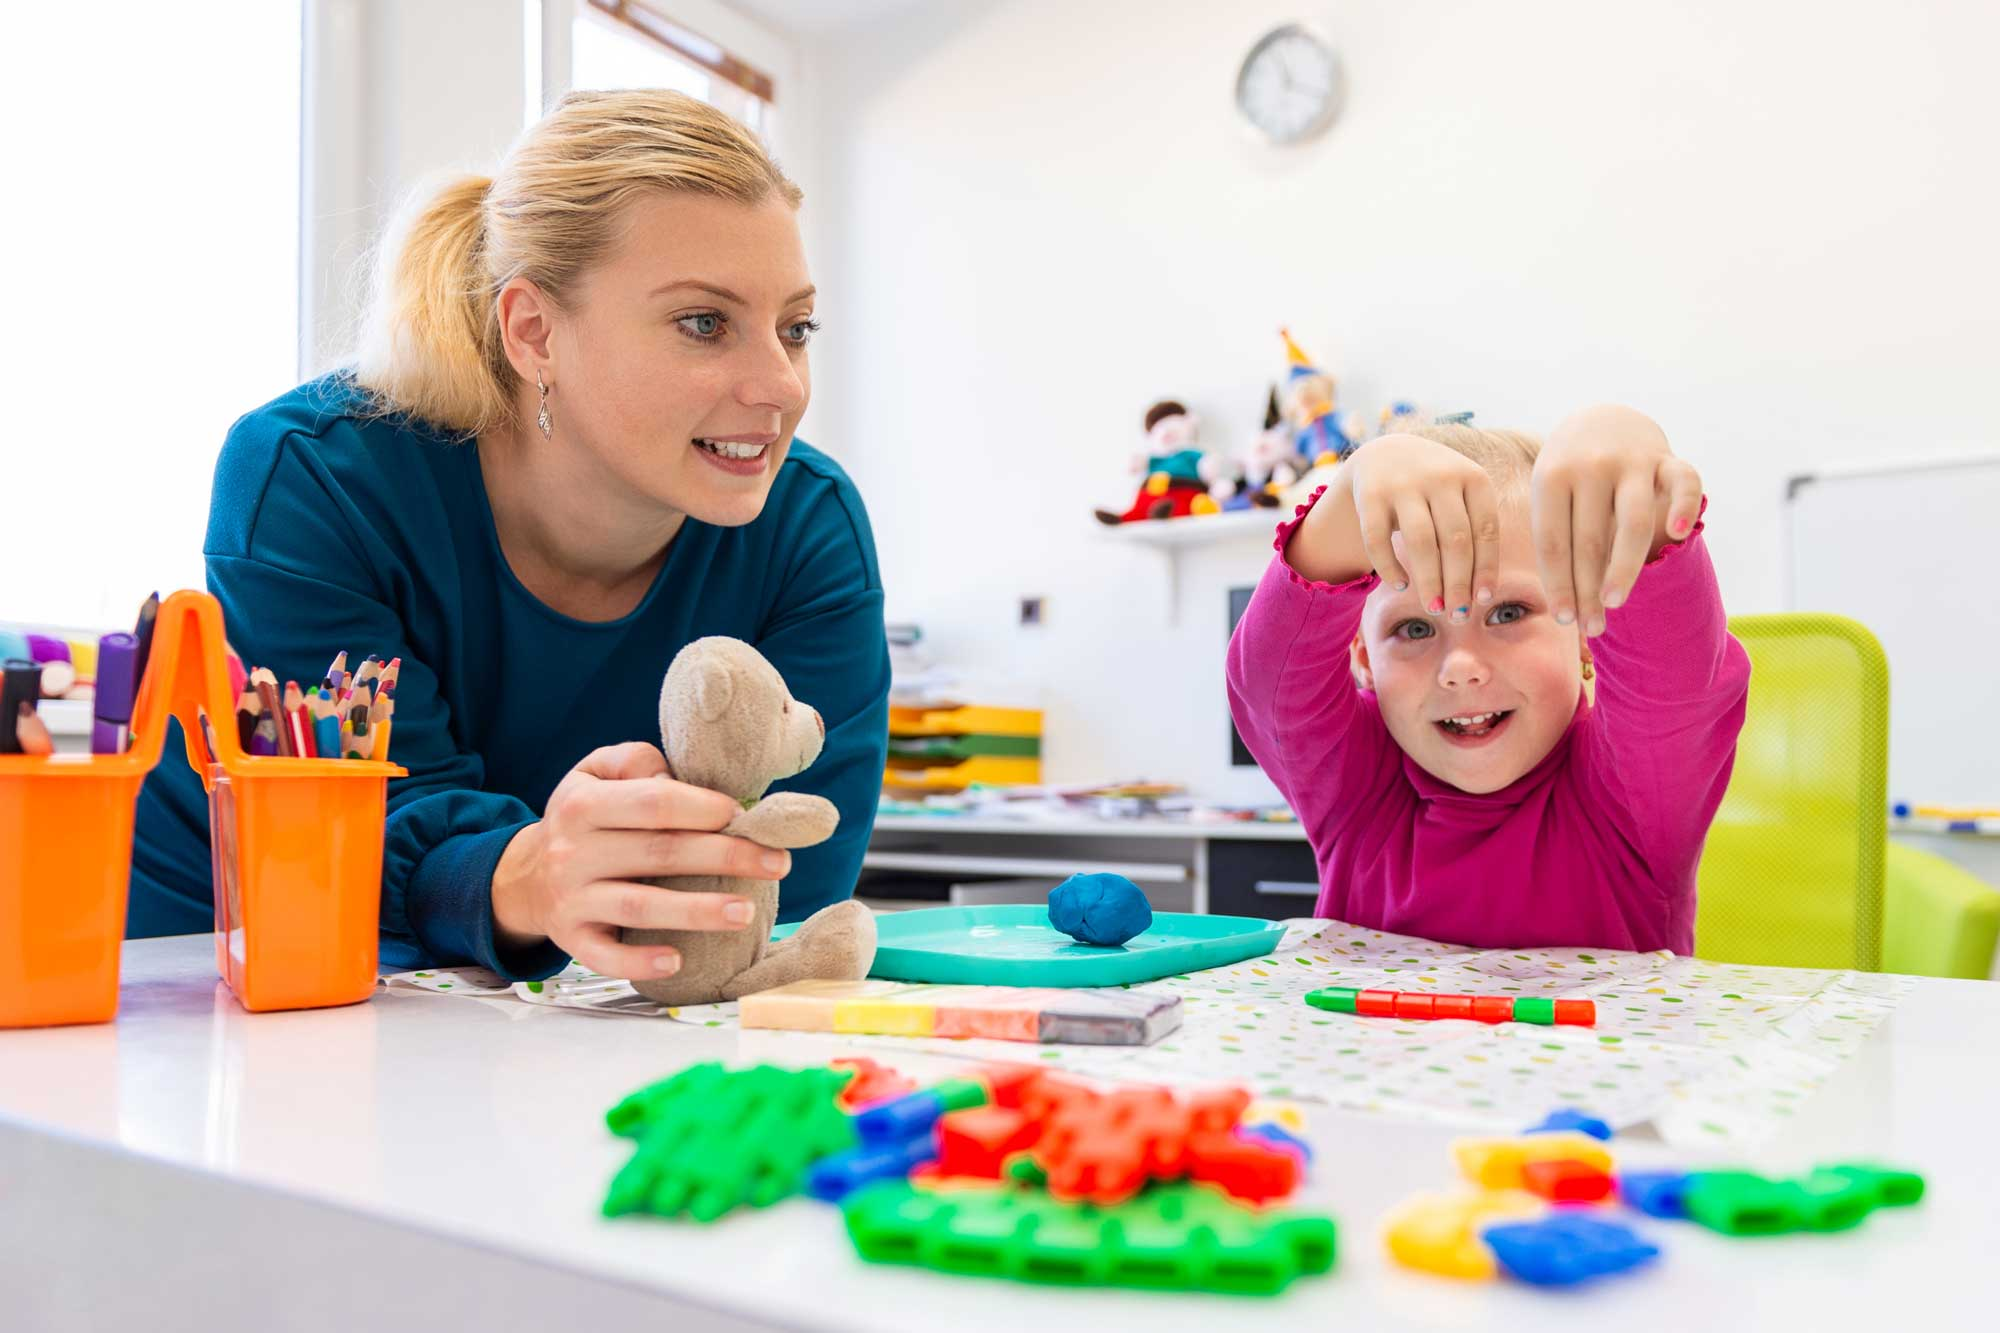 Teacher playing blocks with female student